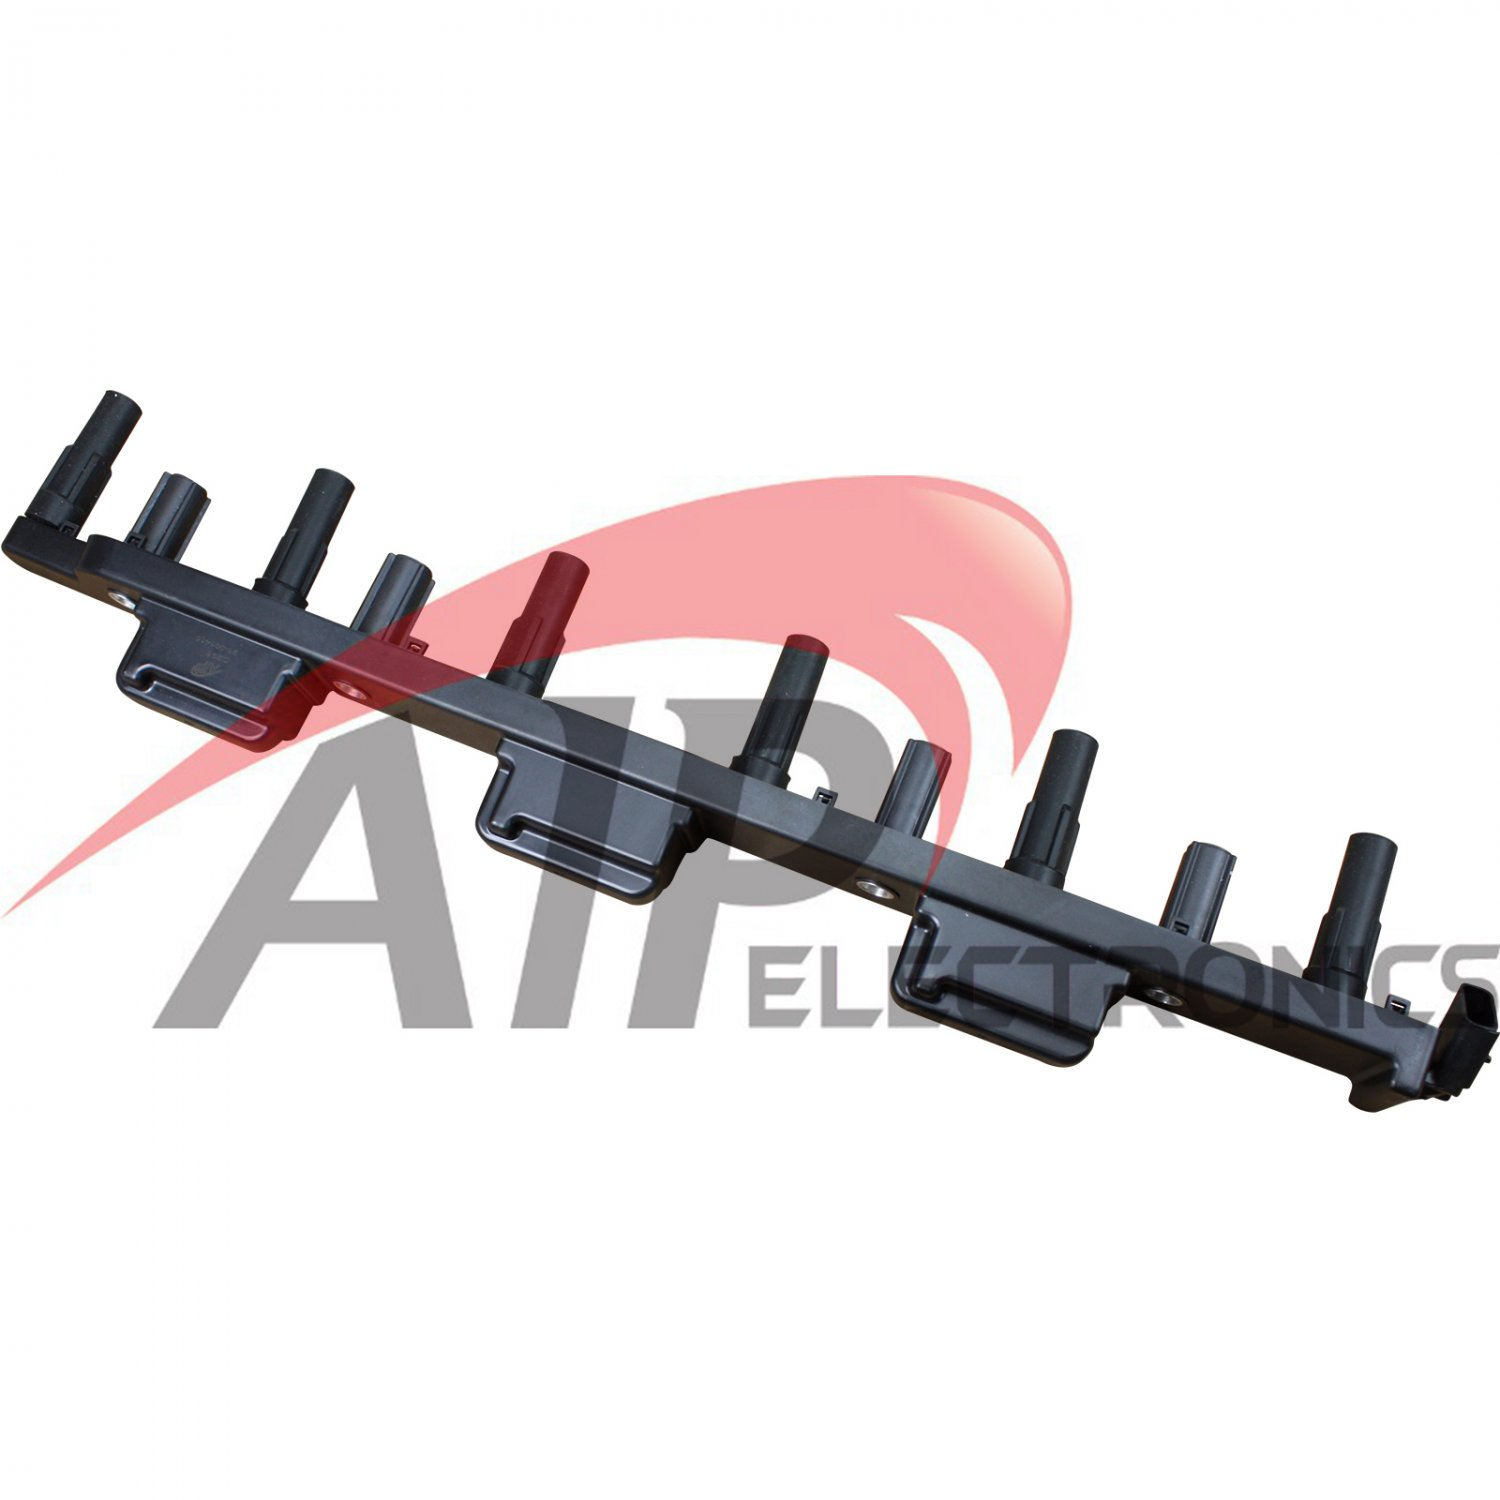 Brand New Ignition Coil Pack Complete JEEP 4.0L 6cyl Oem Fit C296